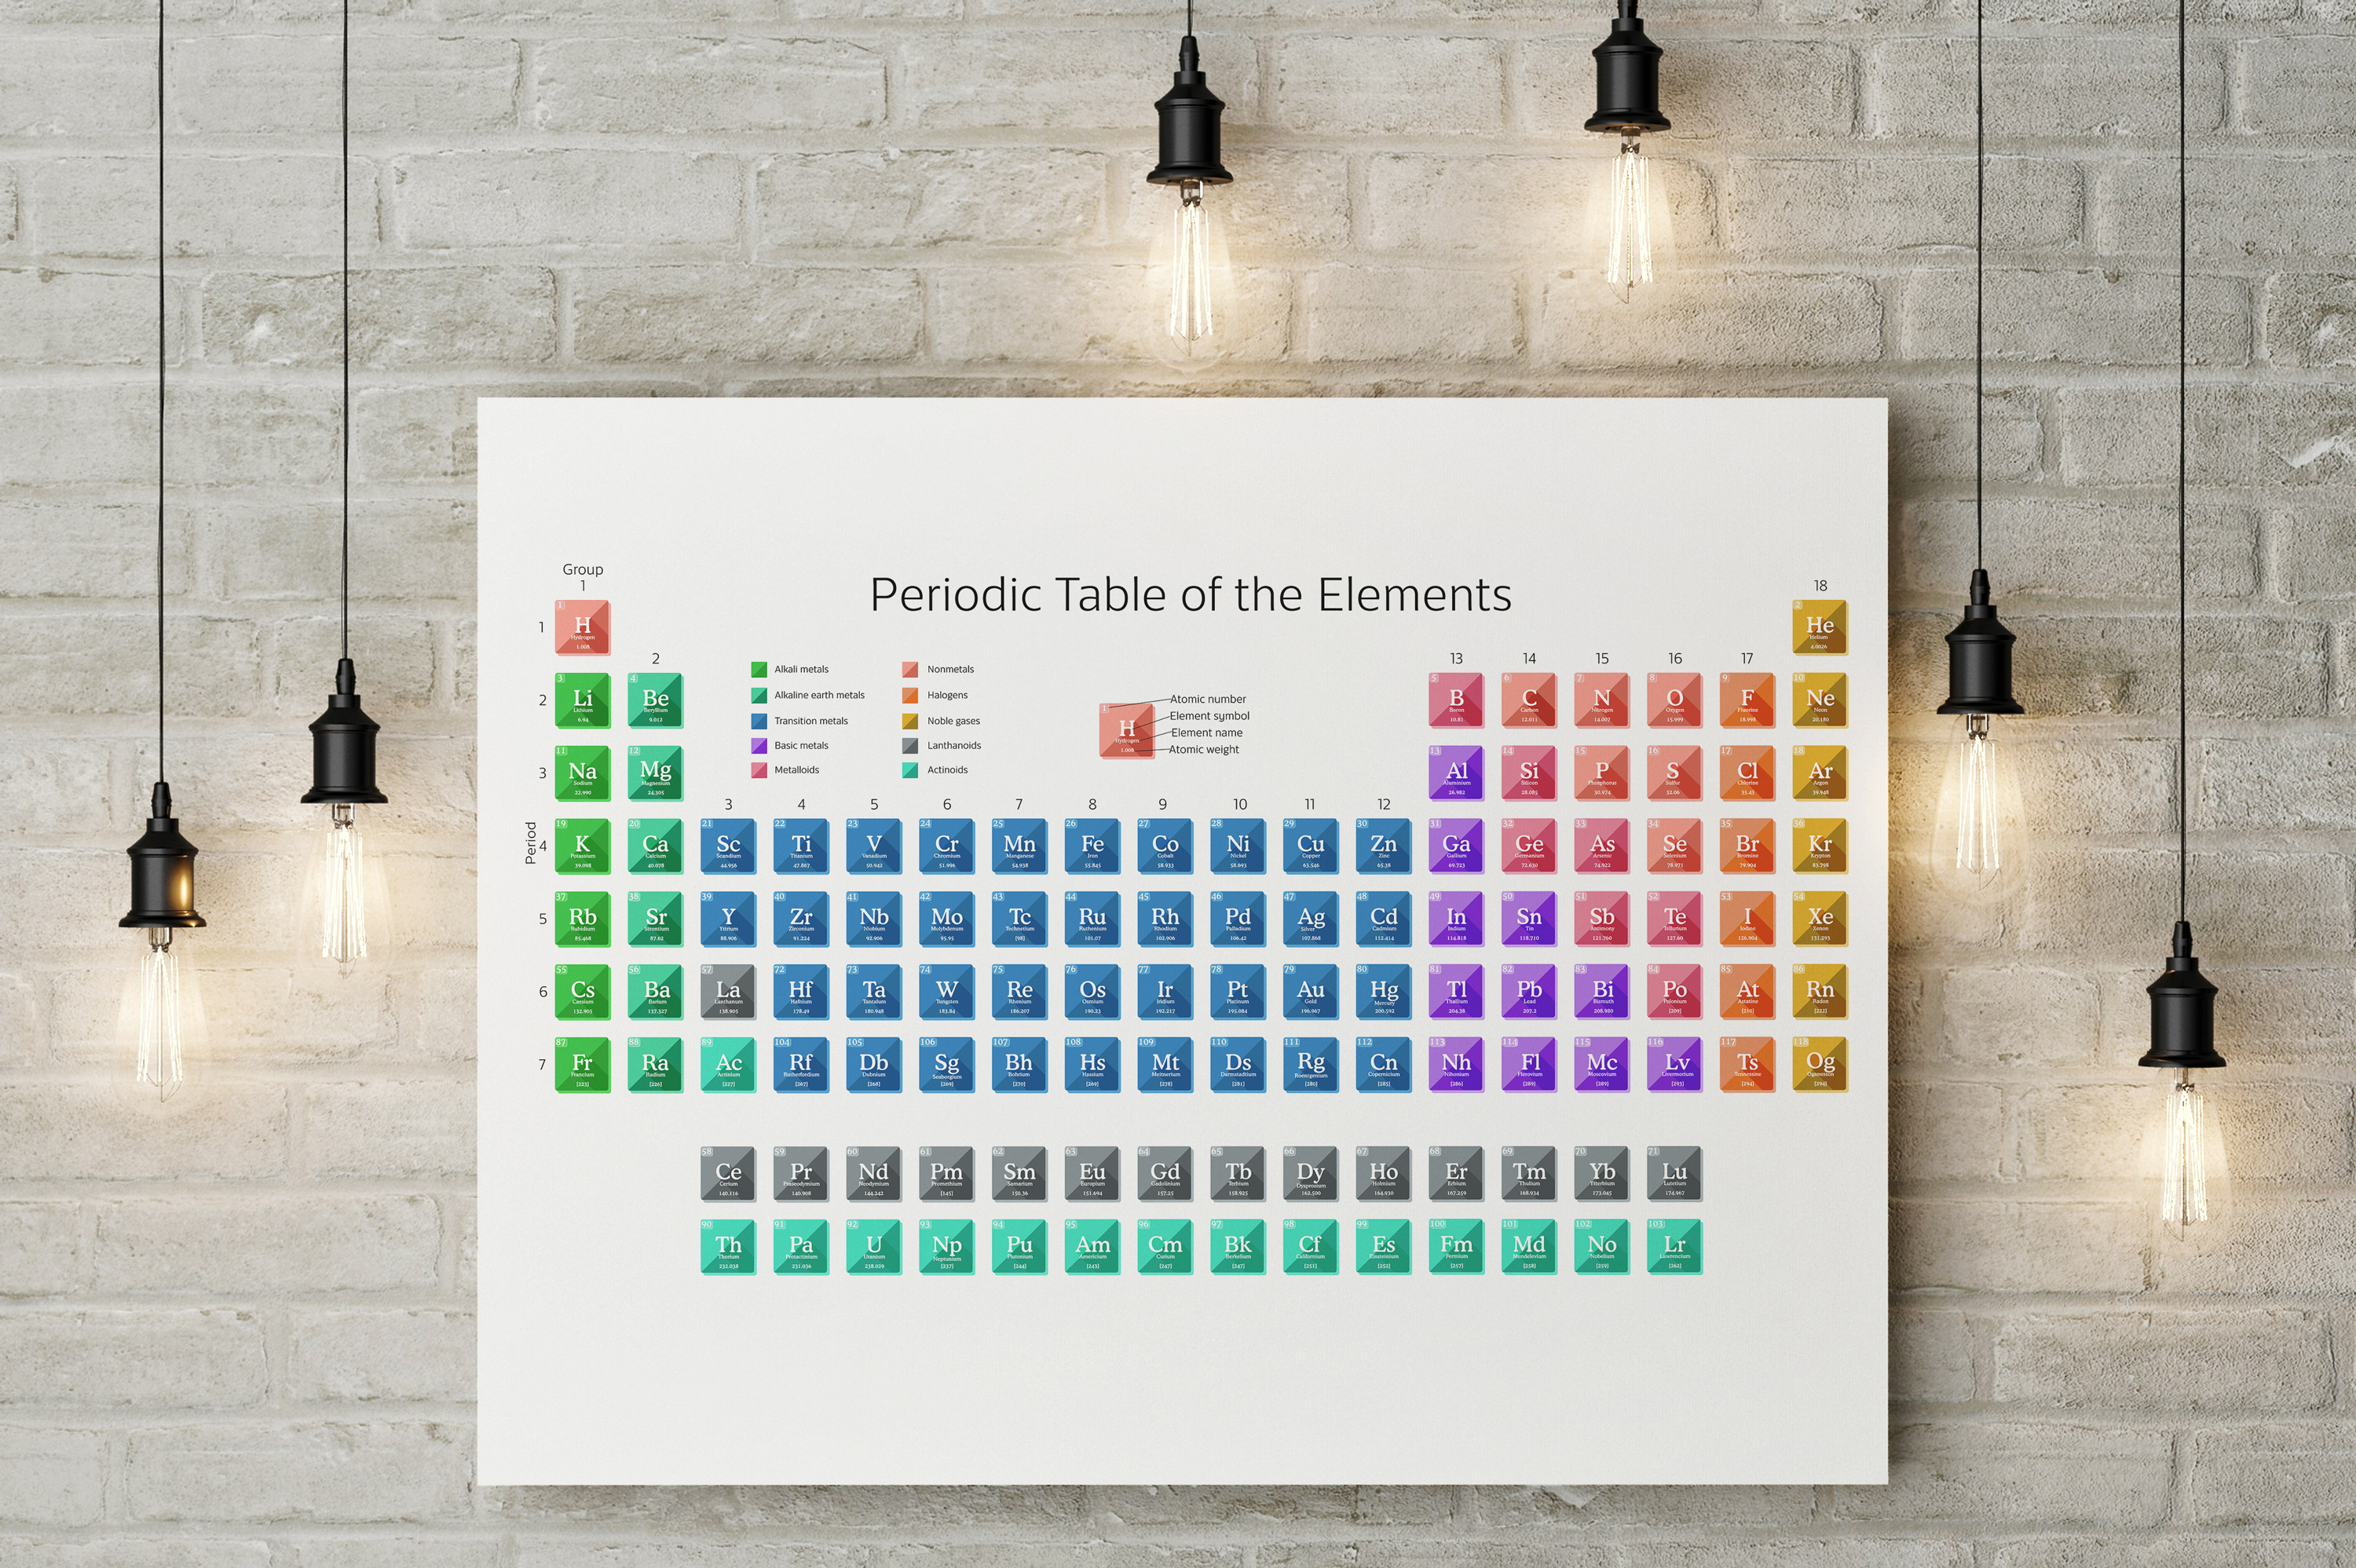 Periodic table of the elements by inko design bundles periodic table of the elements example image 1 urtaz Choice Image